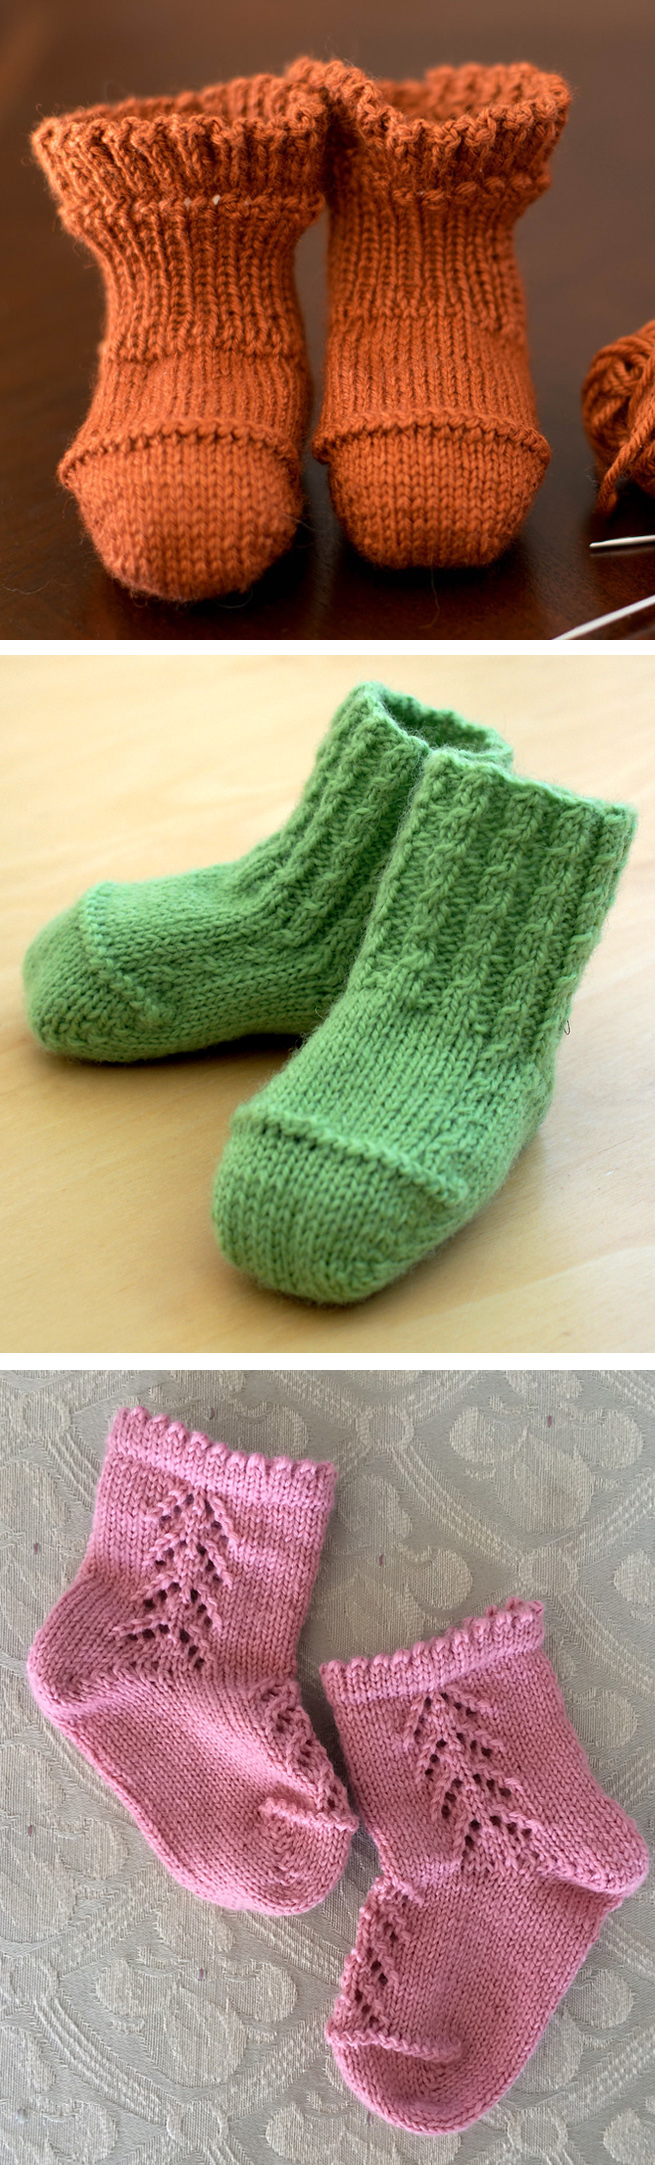 27+ Awesome Image of Converse Knitted Slippers Pattern ...